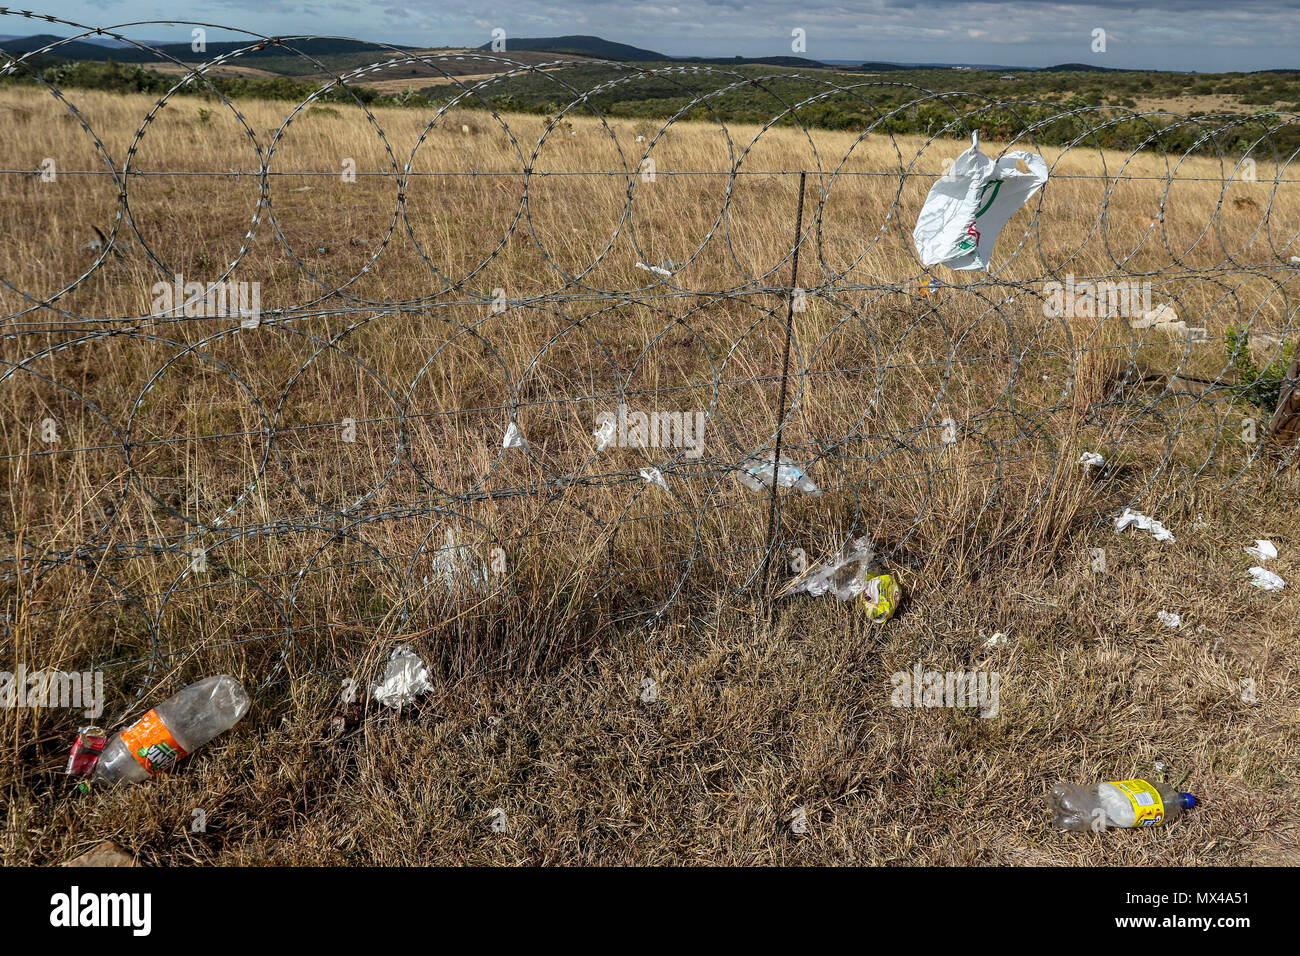 Discarded plastic bags and other plastic along a razor wire fence along the N2 motorway just outside Port Elizabeth, South Africa - Stock Image